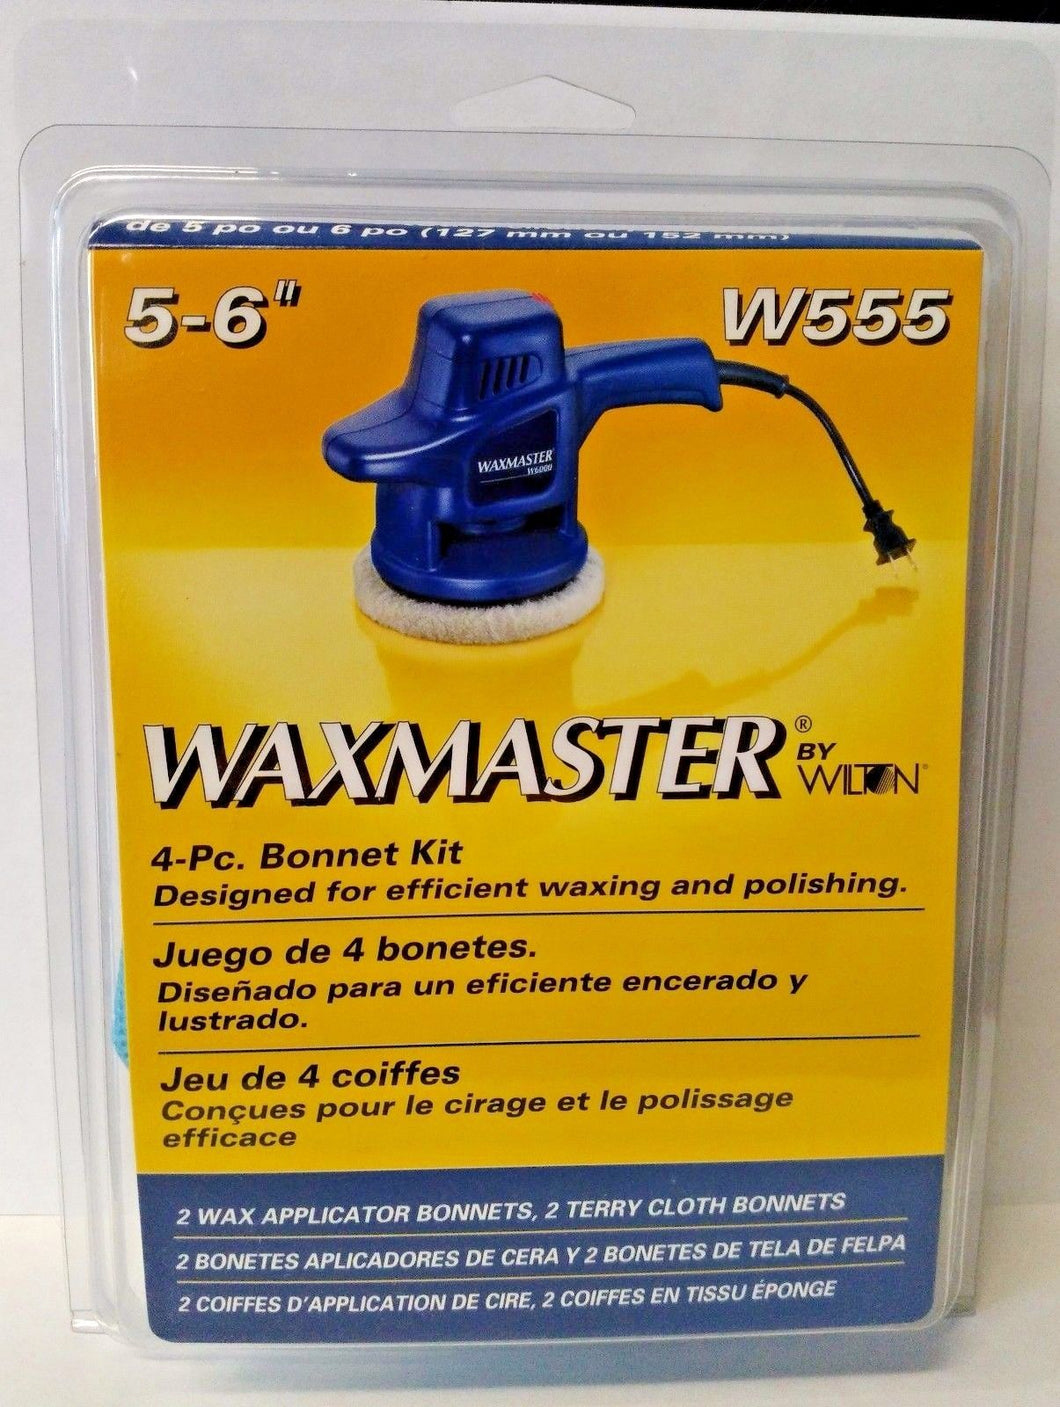 Waxmaster by Wilton 5-6